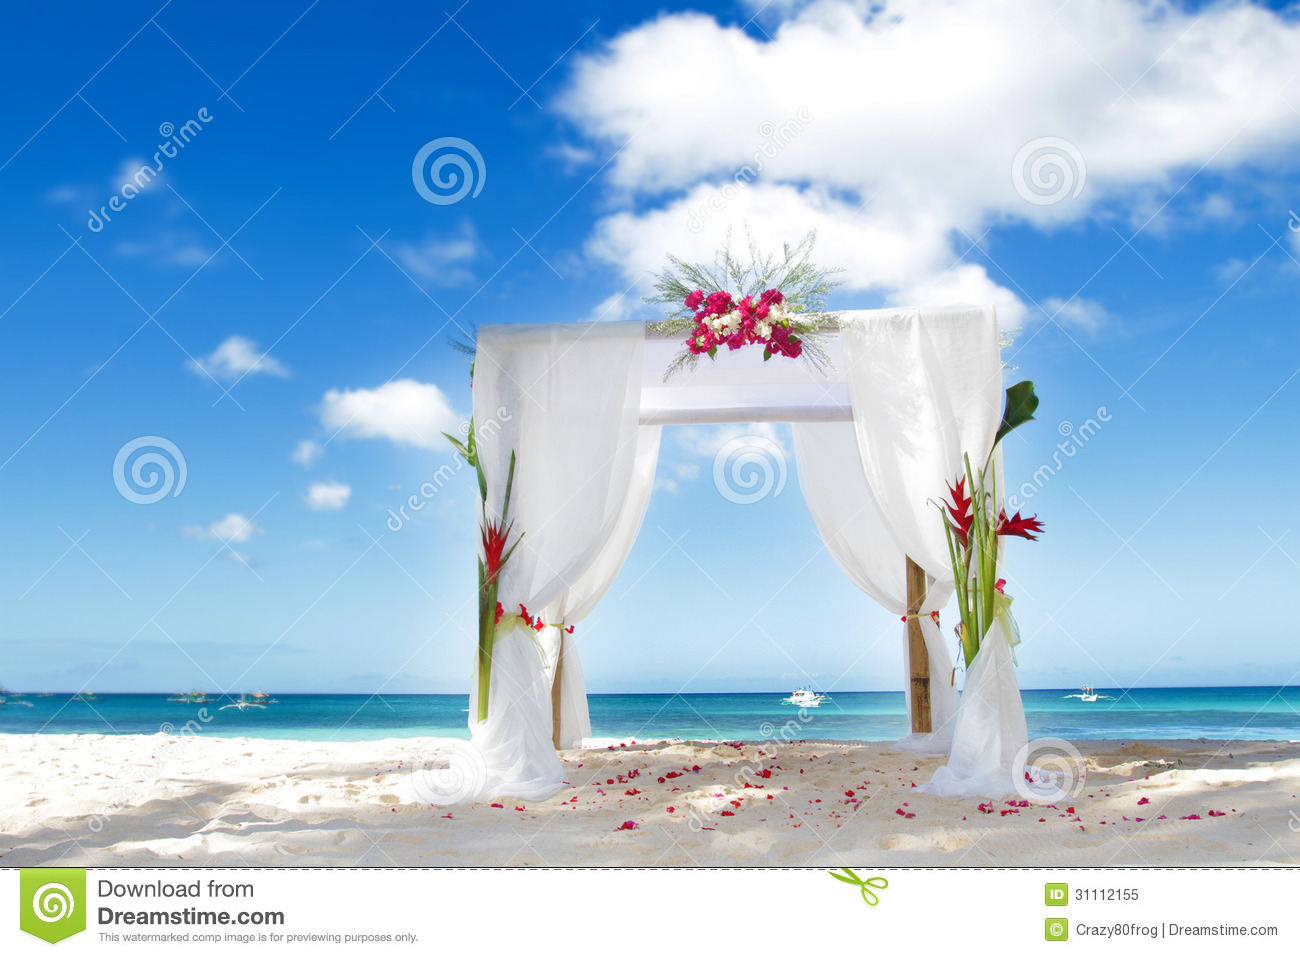 Wedding Arch With Flowers On Beach Royalty Free Stock Photo